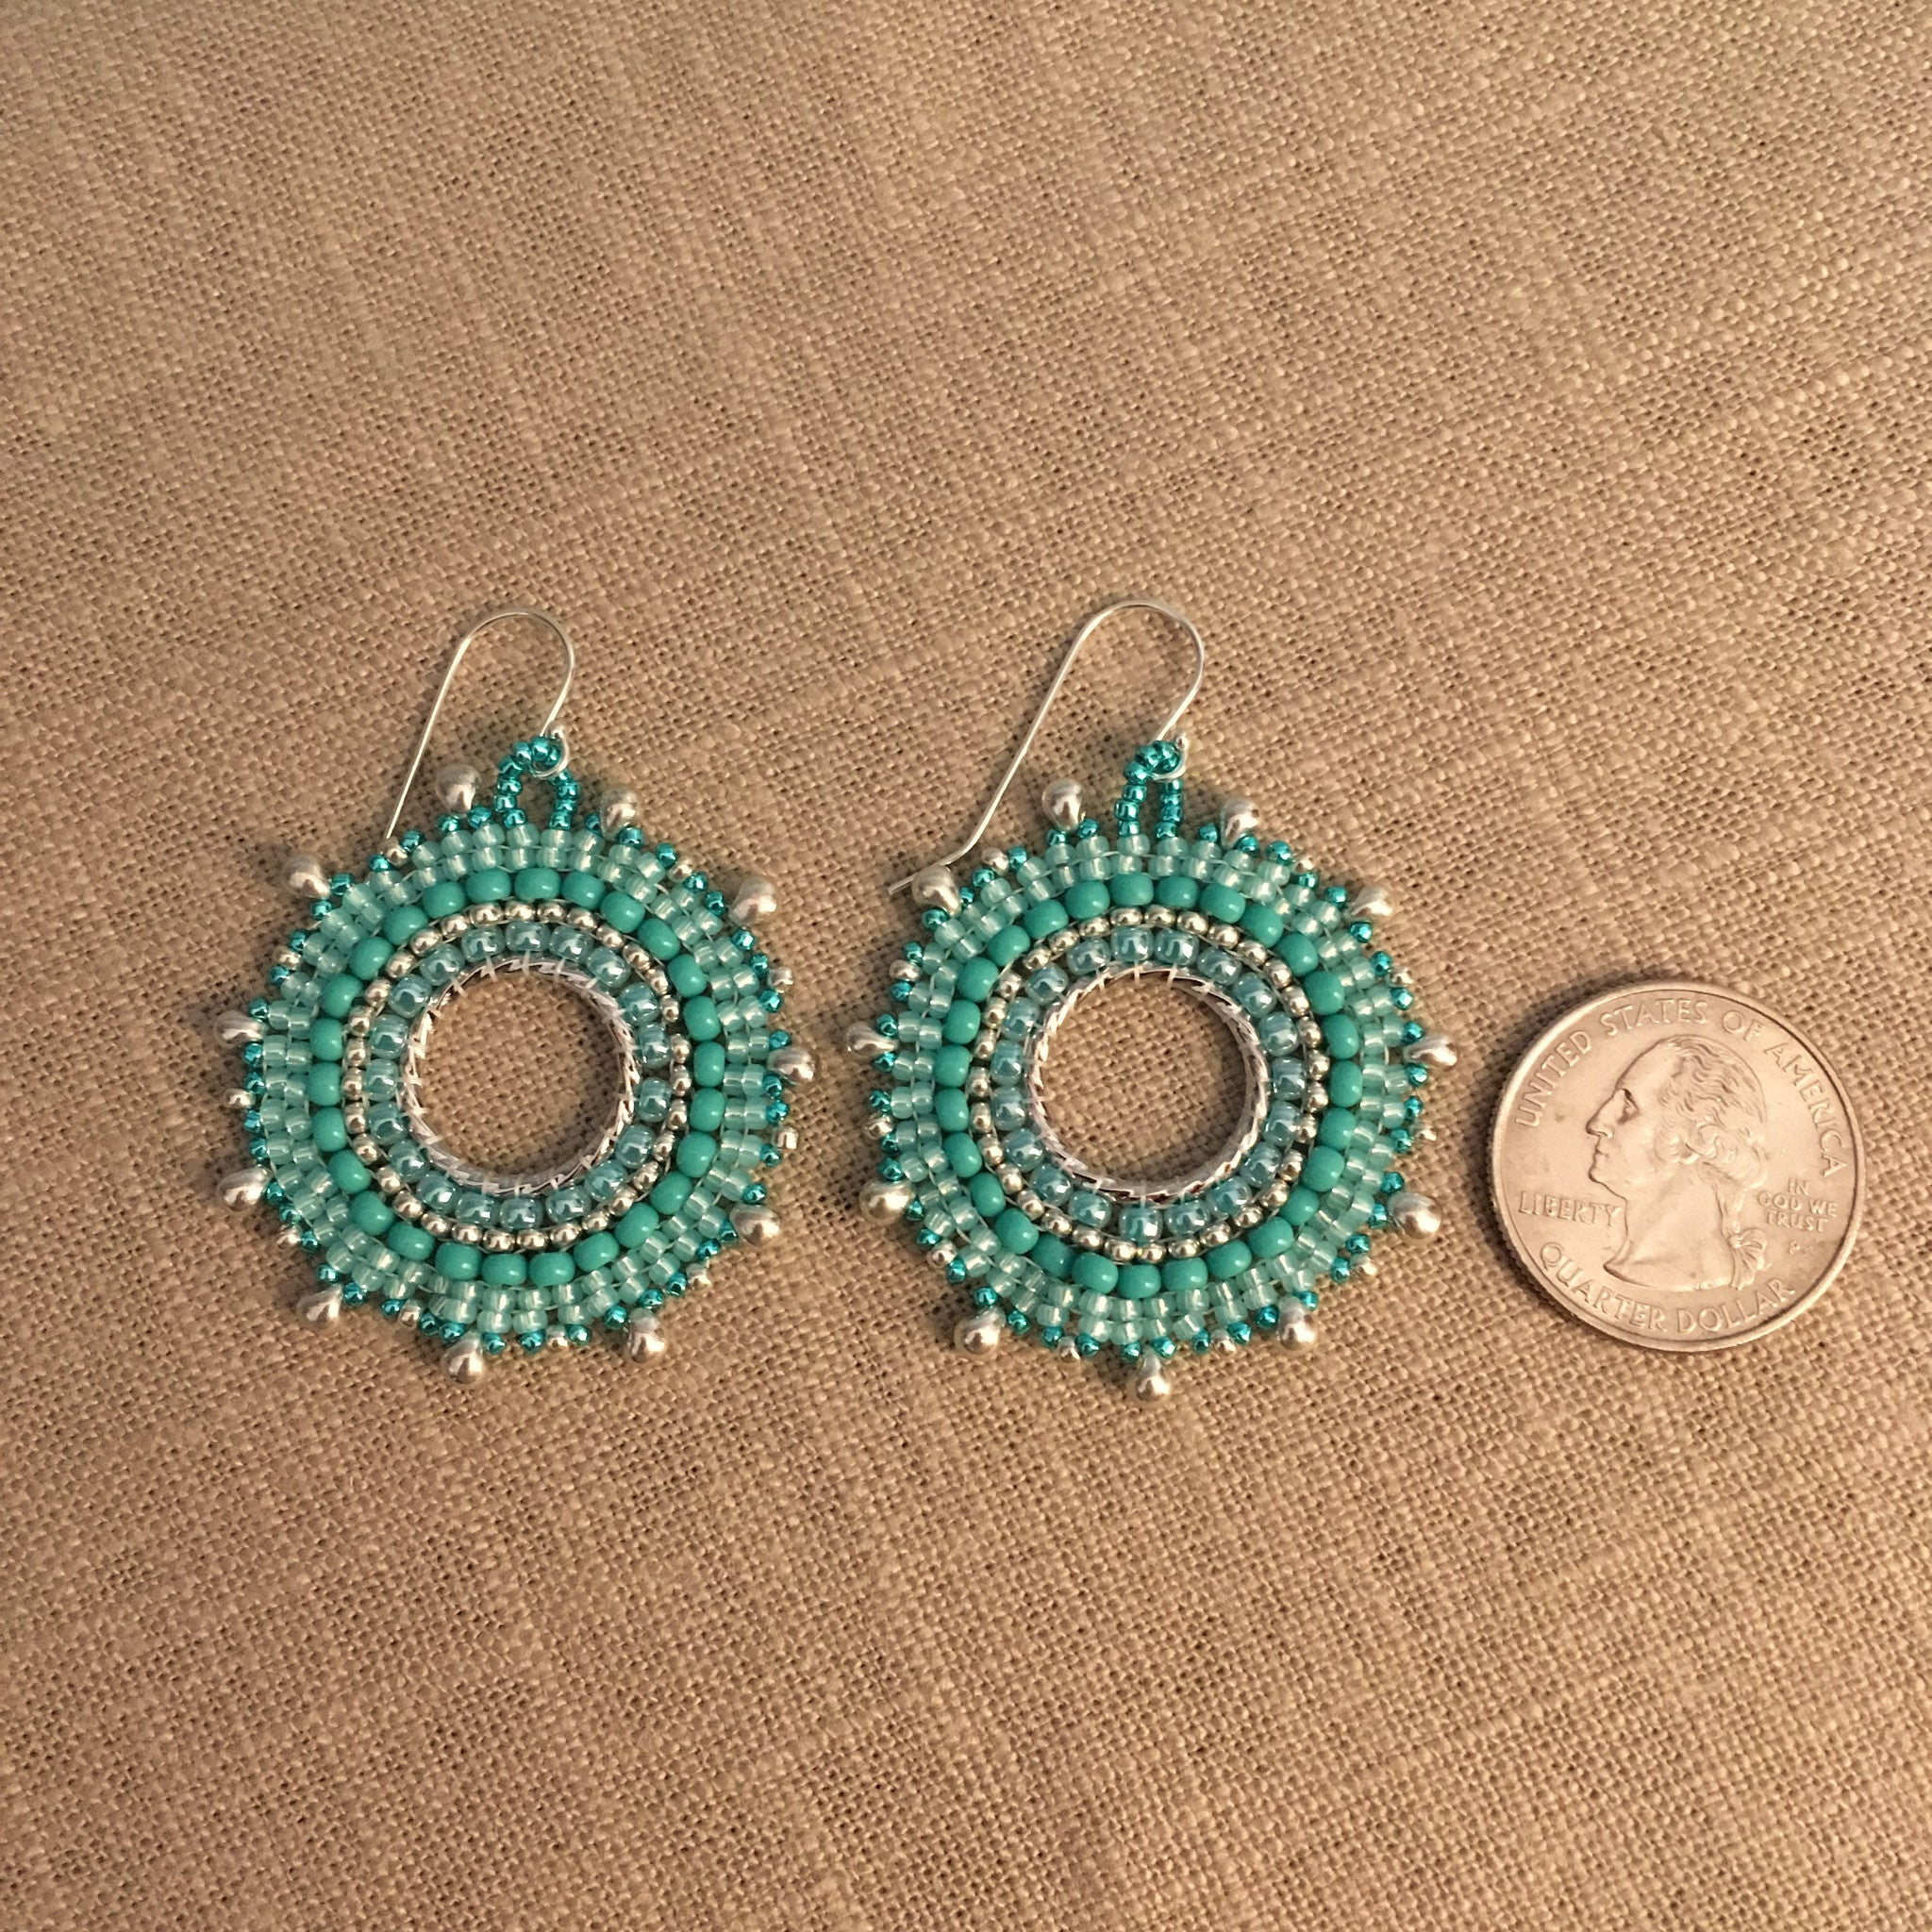 Turquoise and Silver Sunburst Earrings